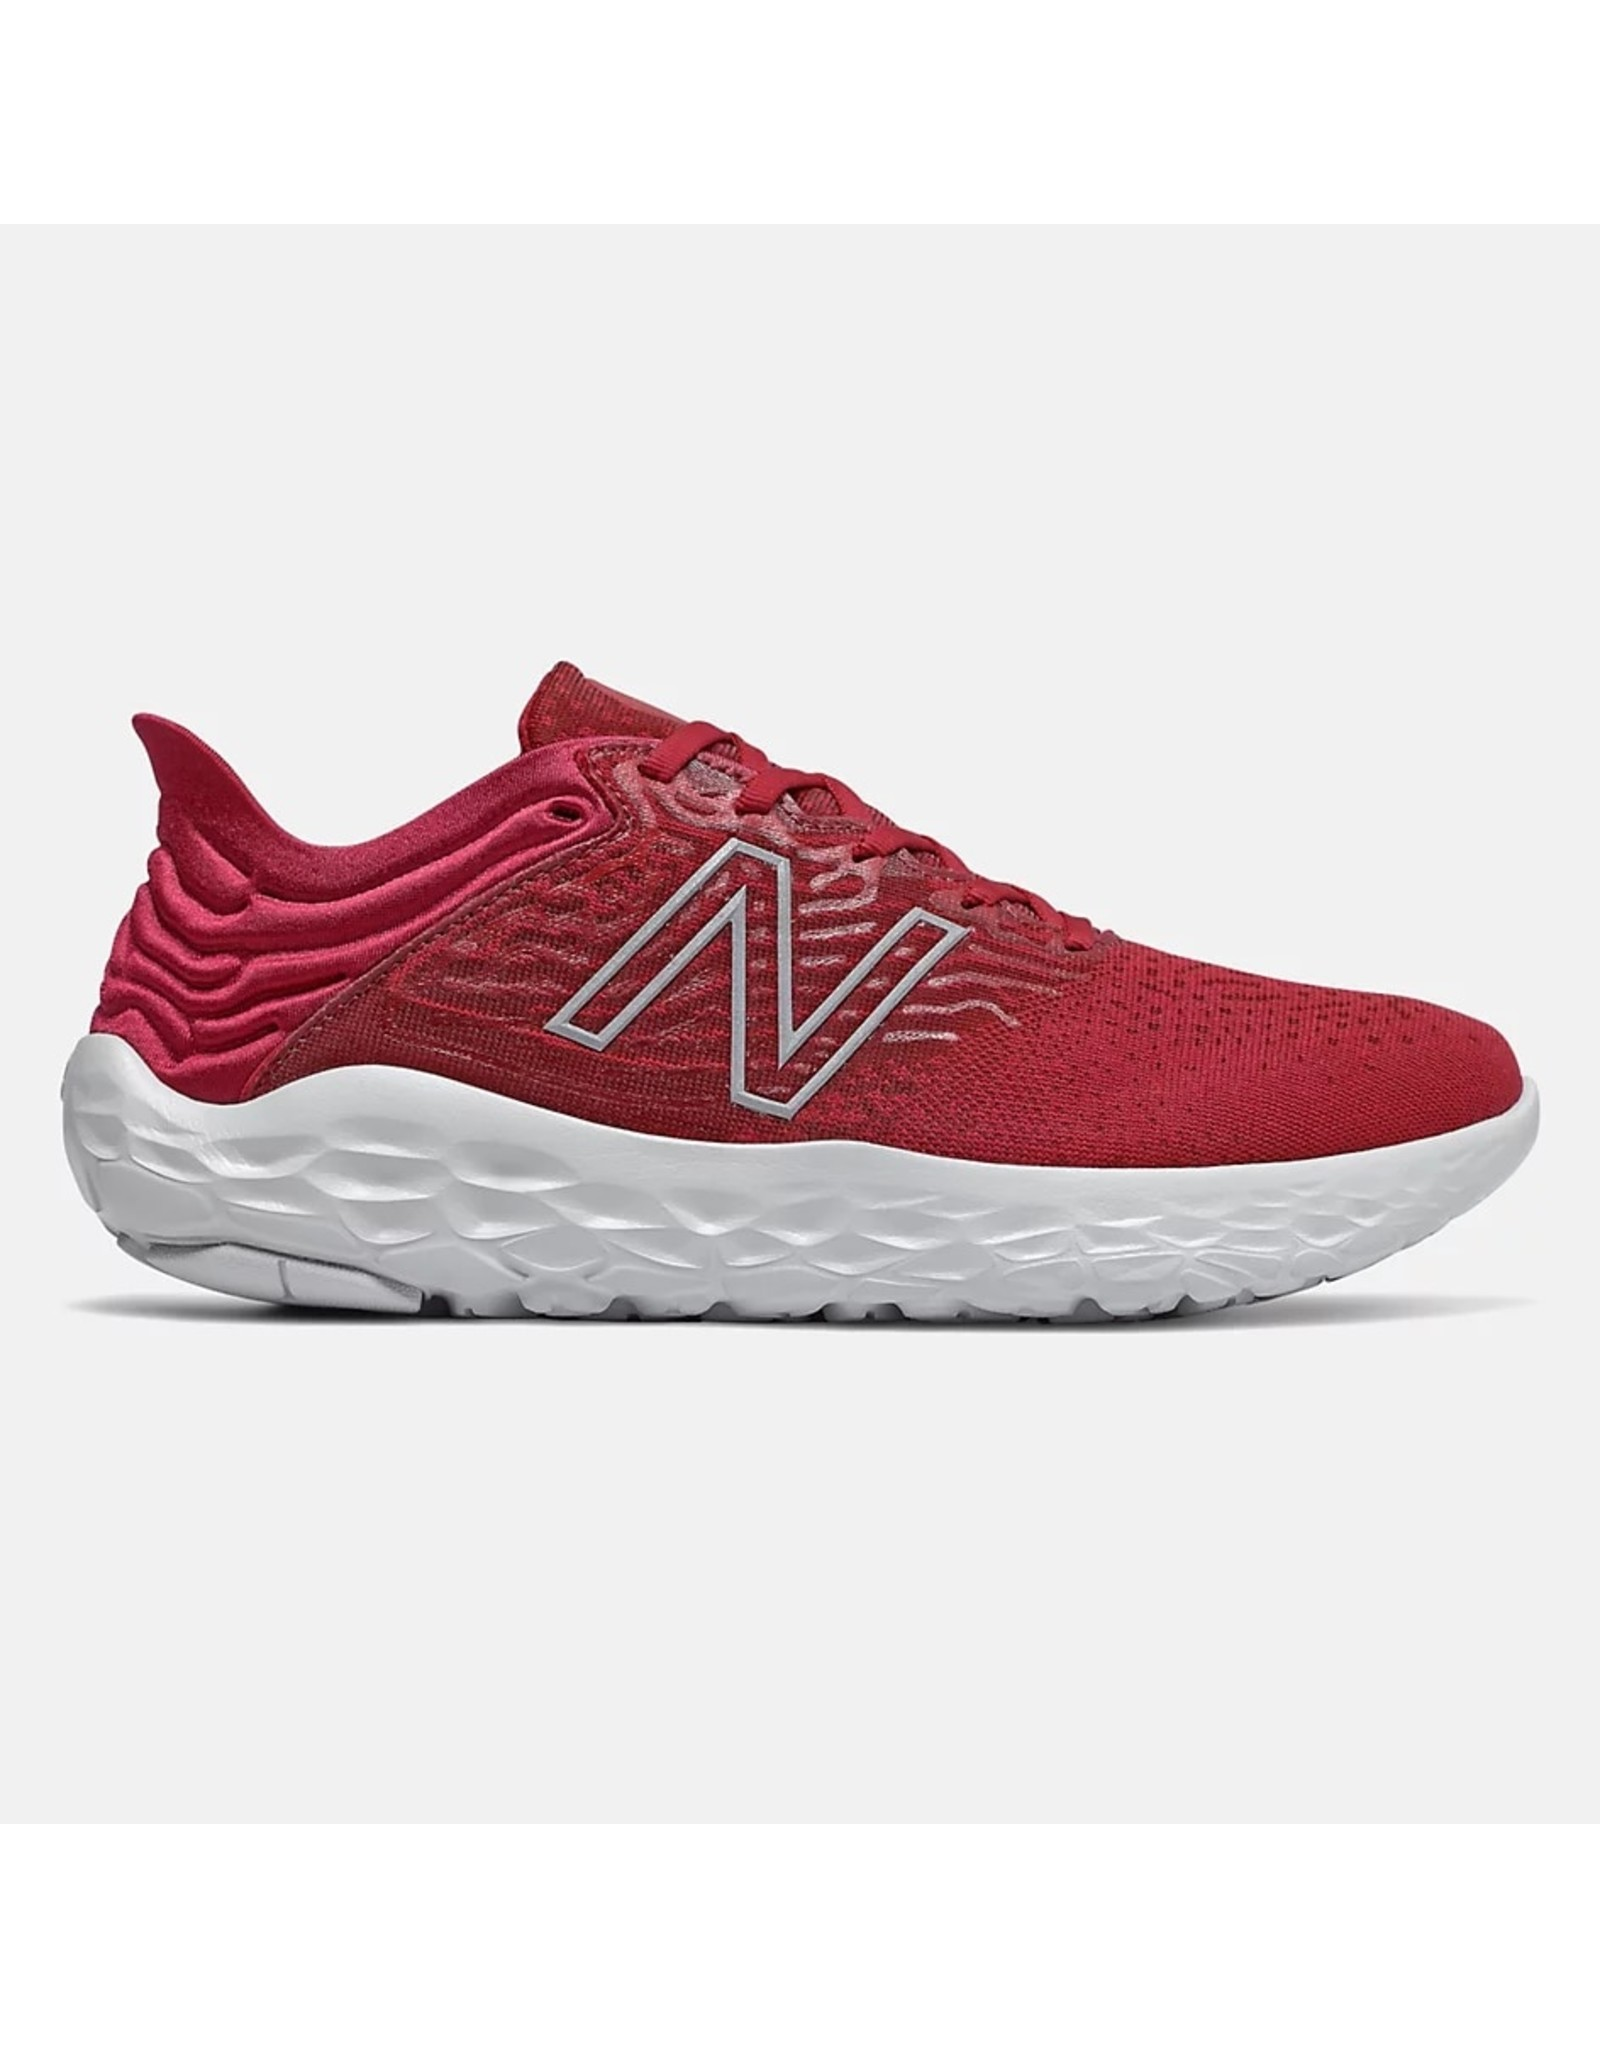 New Balance New Balance Beacon v3